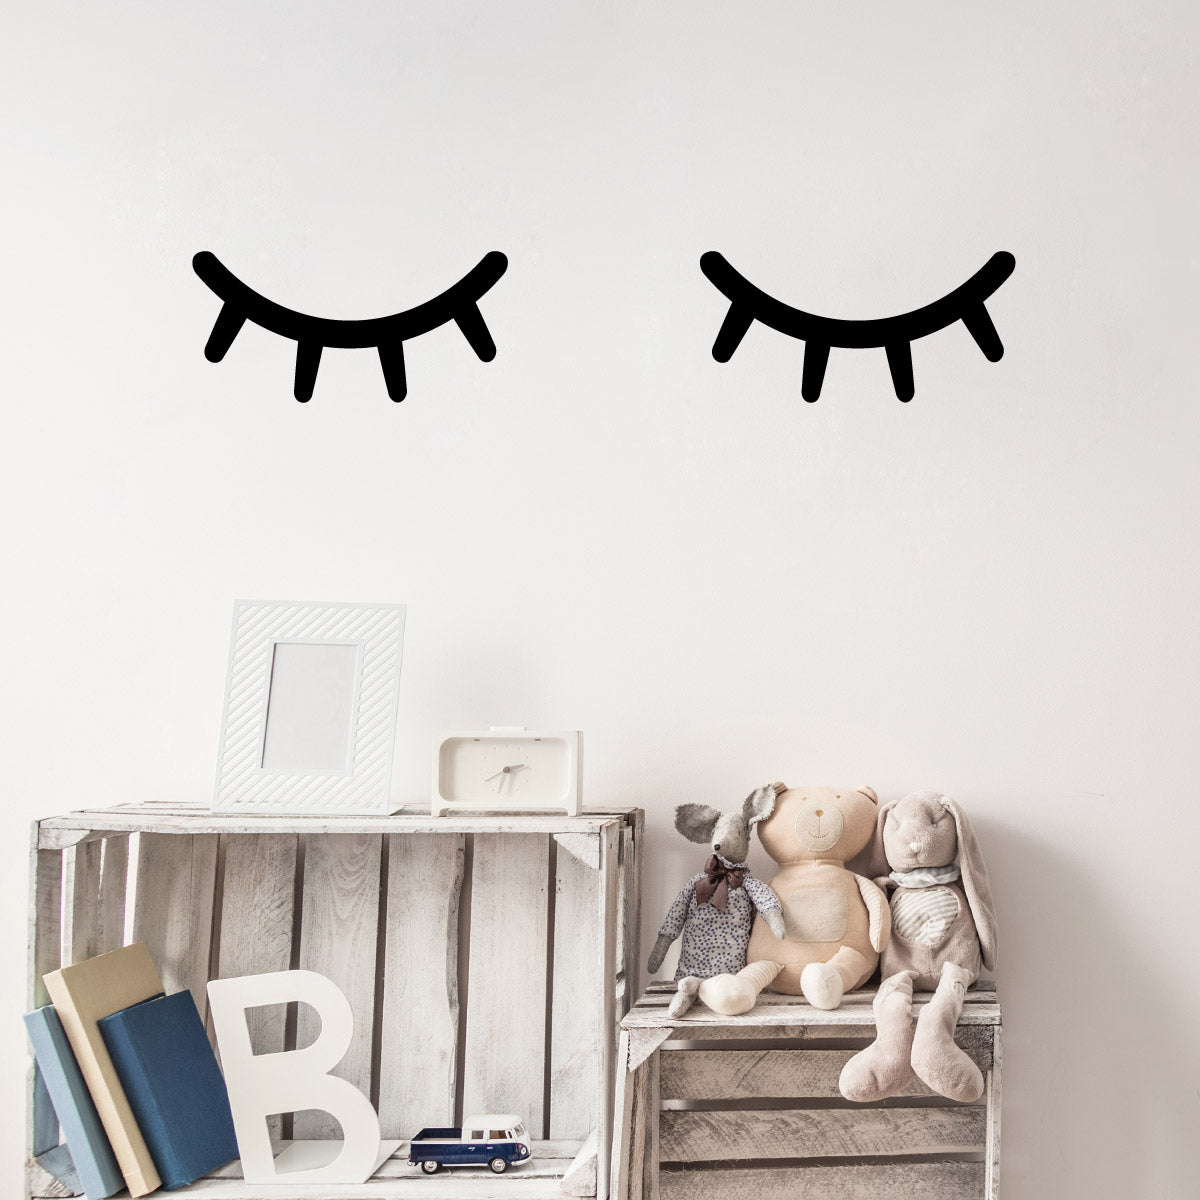 CraftsStar Sleepy Eyes Wall Stencil in Kids Bedroom